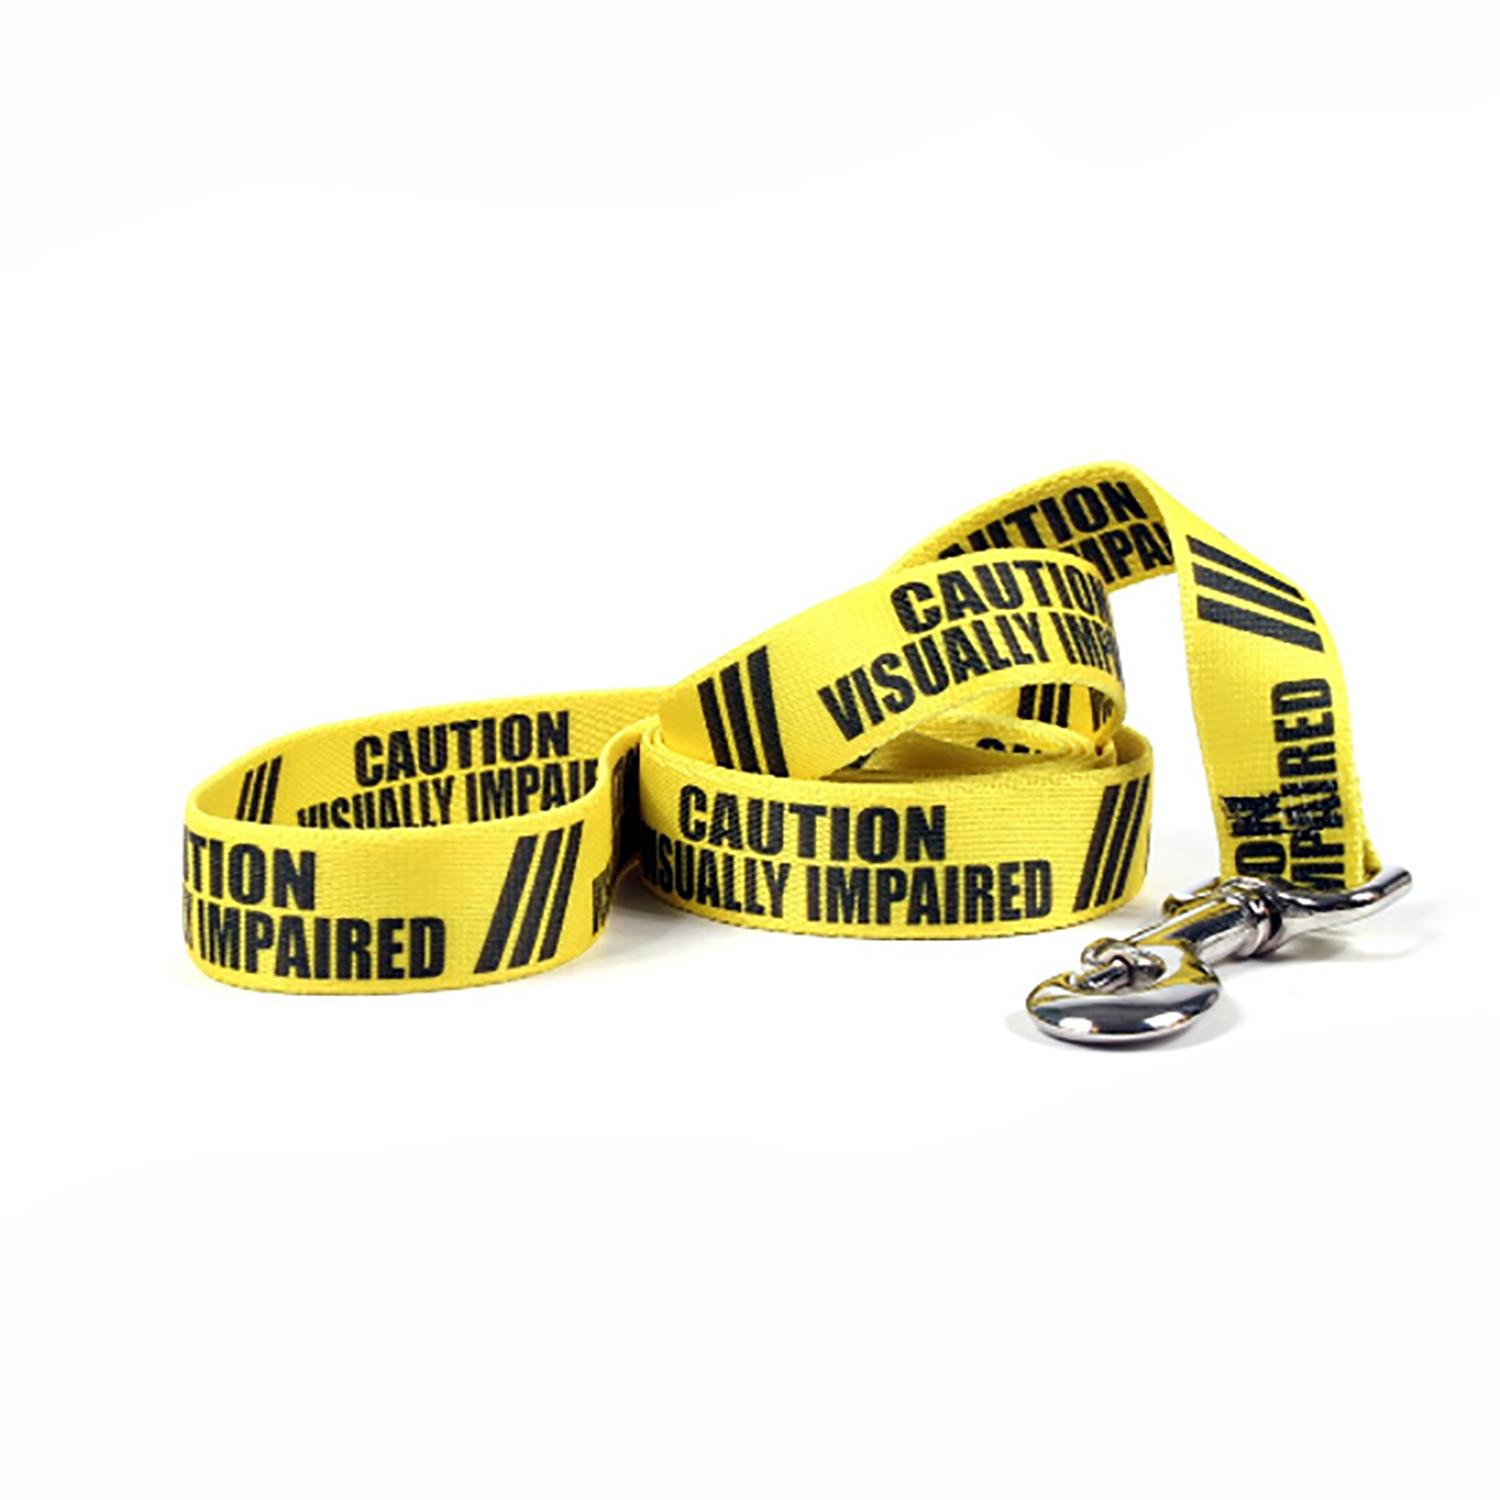 Caution Dog Leash by Yellow Dog - Visually Impaired